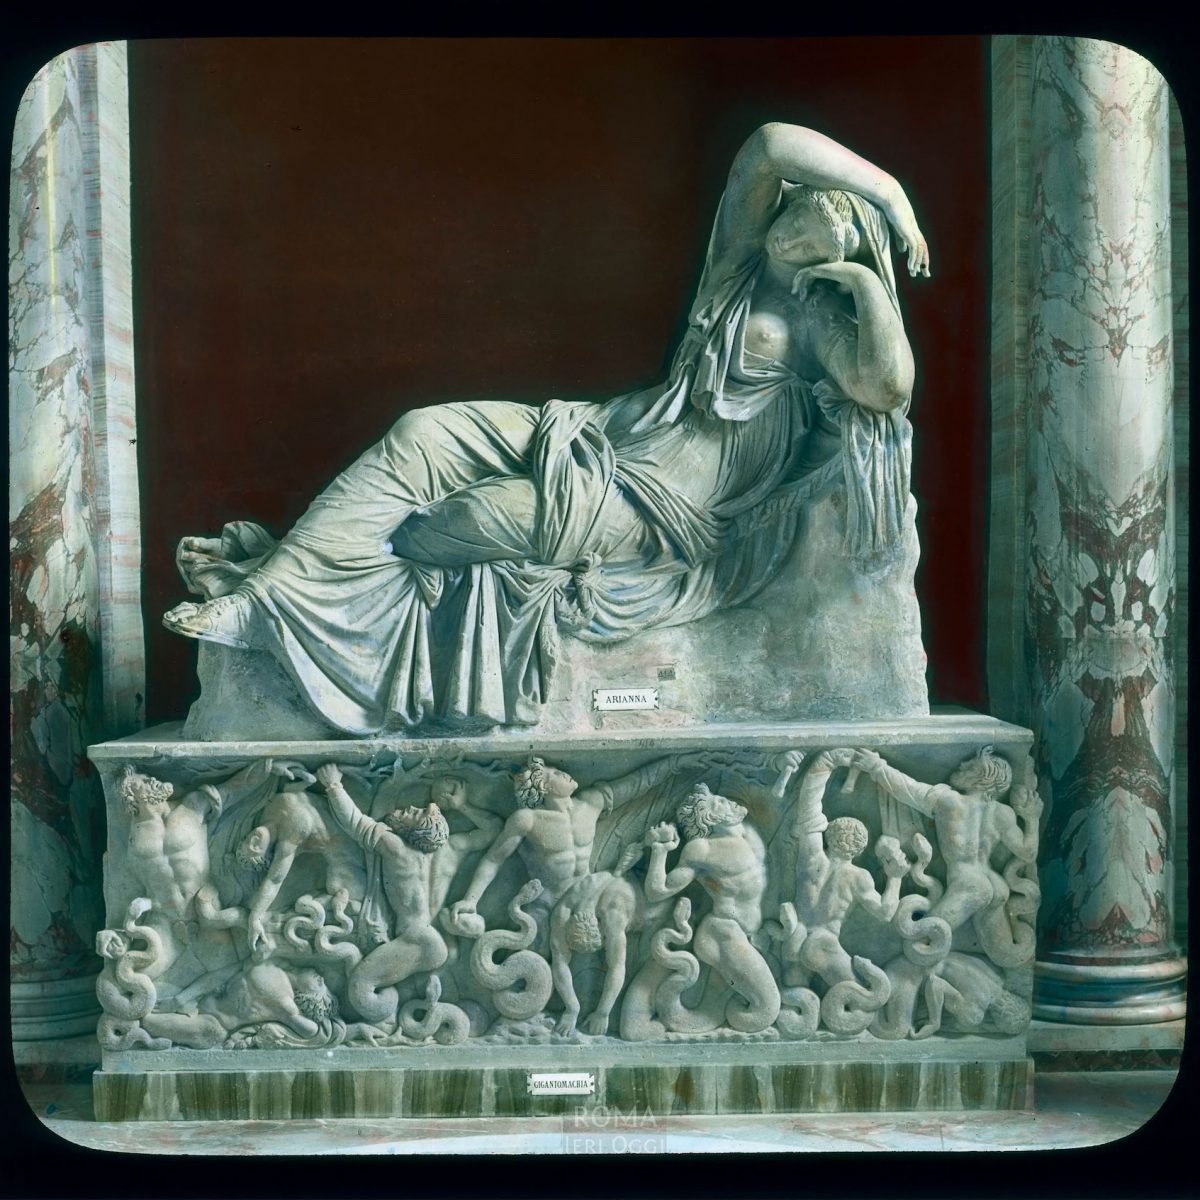 Vatican City. Vatican Museum, Museo Pio-Clementino: Sleeping Ariadne View in tinted lantern slide, ca. 1919-1938. The marble statue dates from the 2nd century B.C.E.